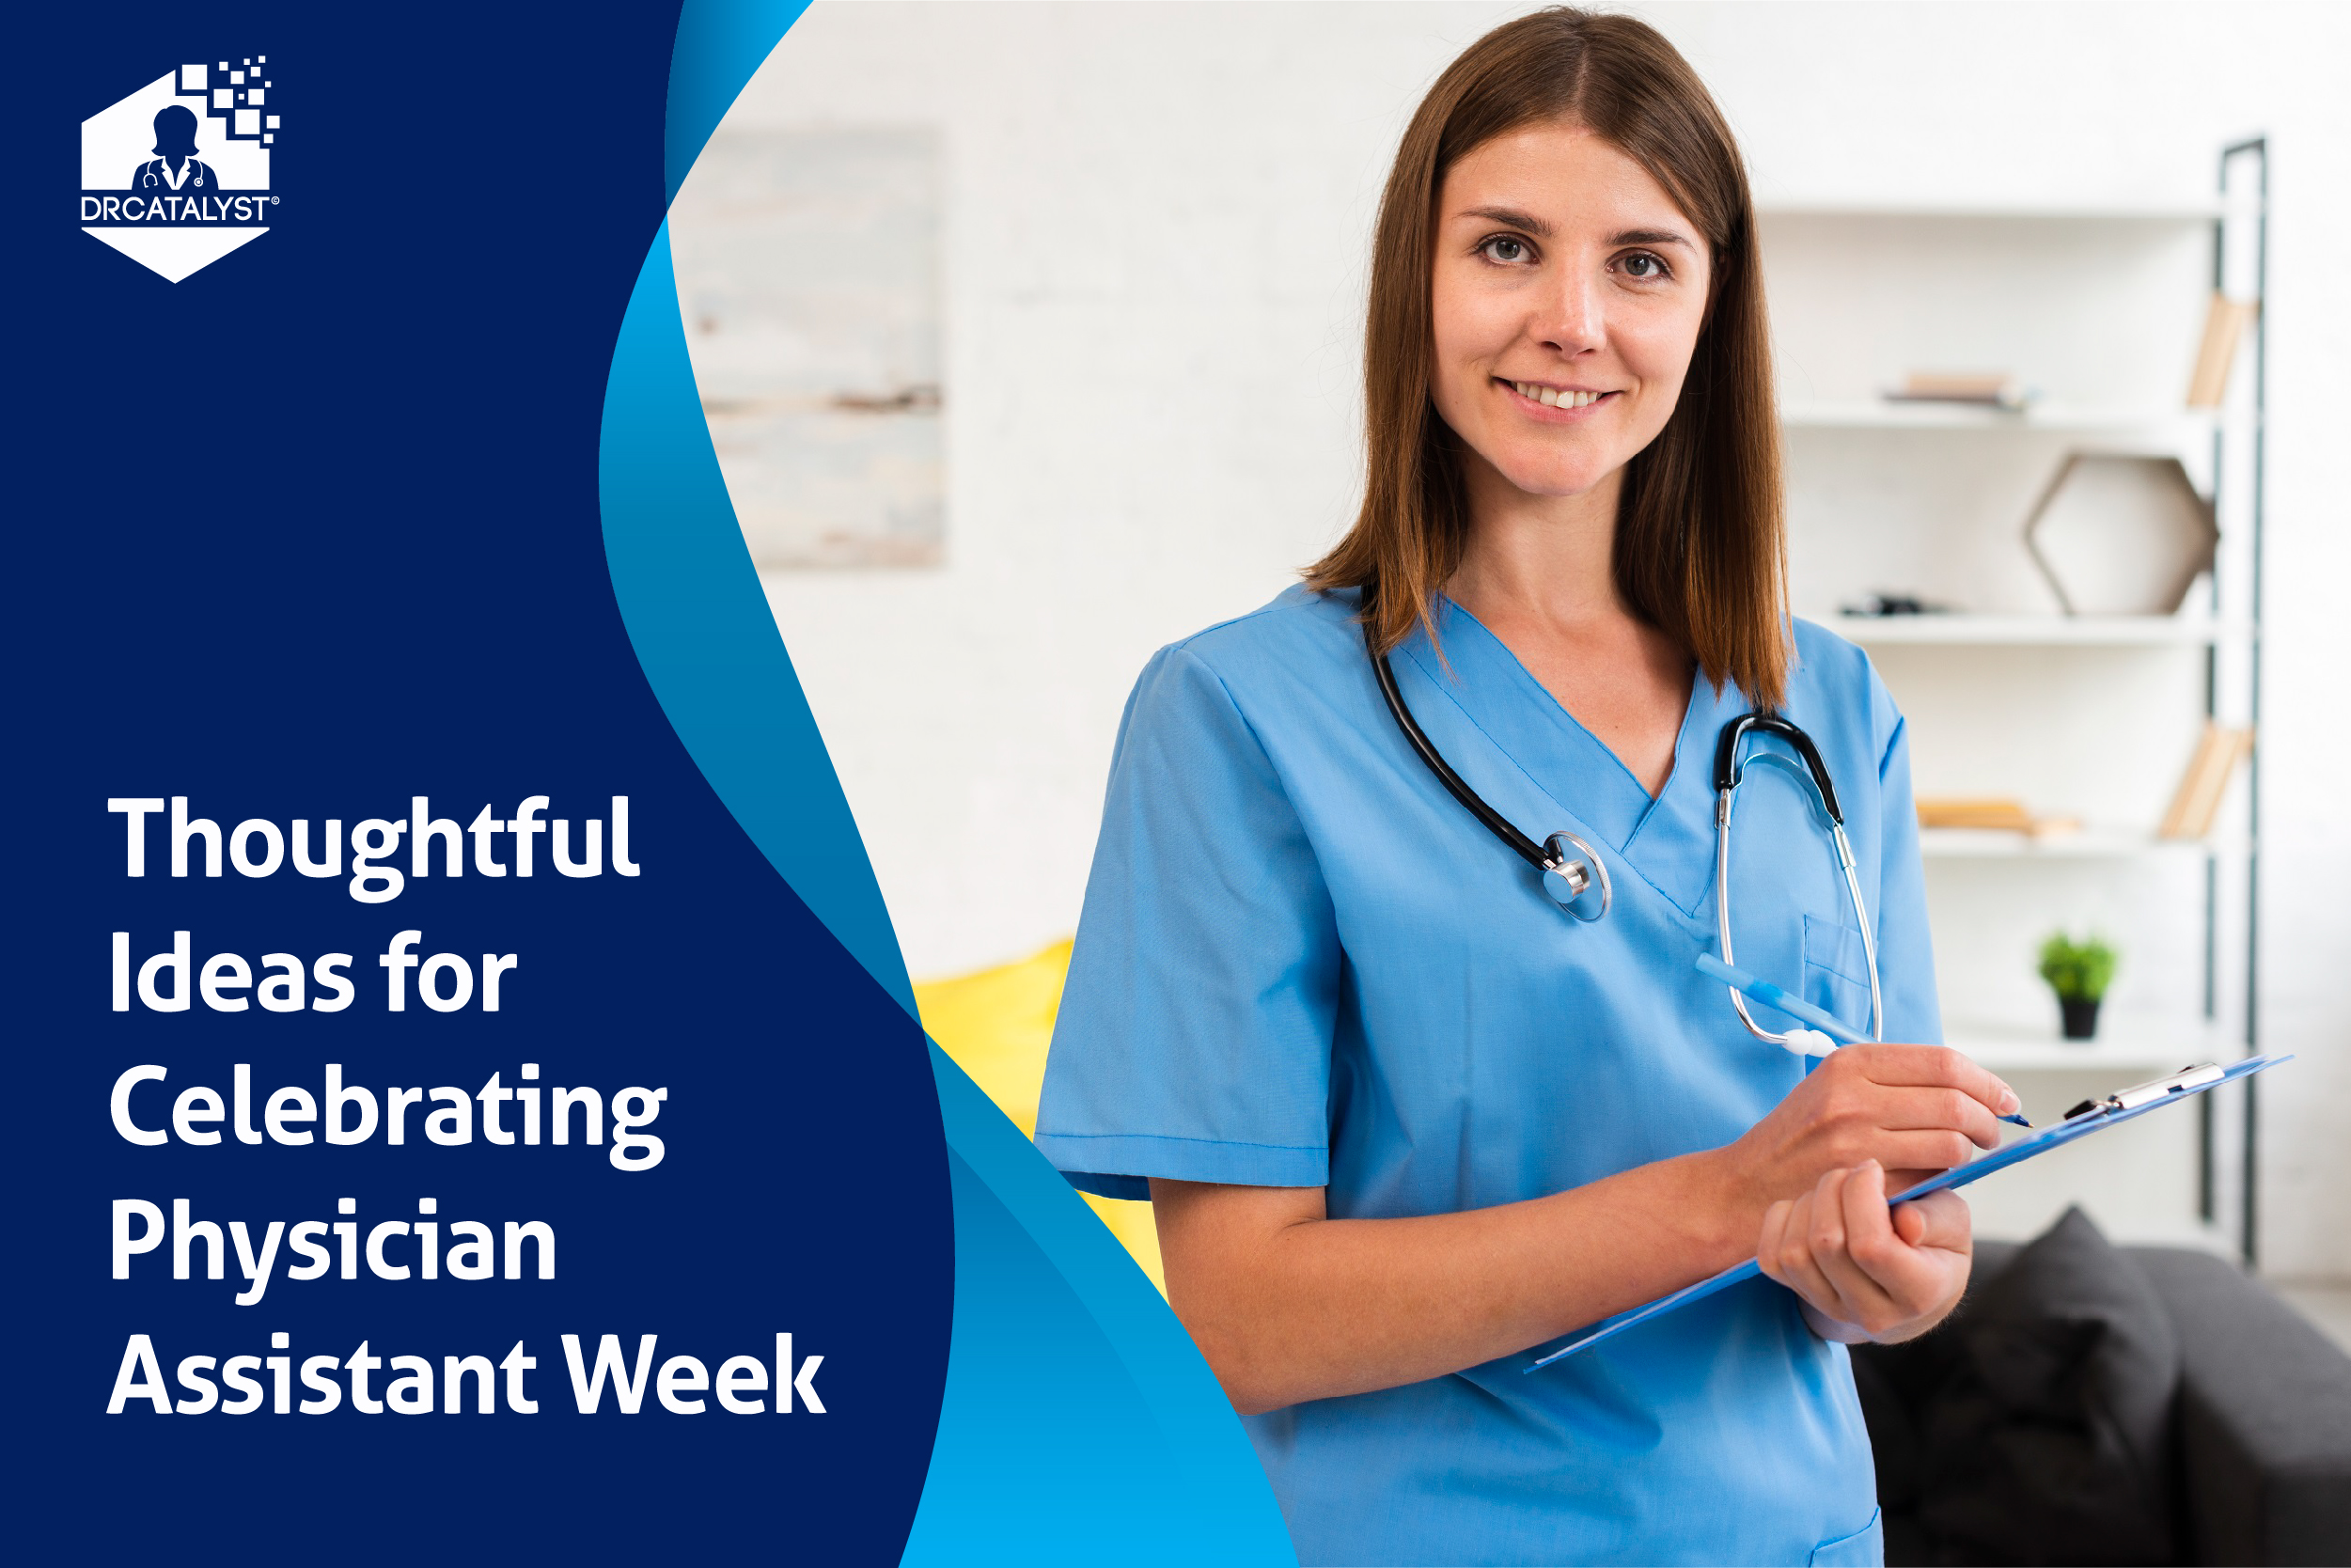 Thoughtful Ideas for Celebrating Physician Assistant Week